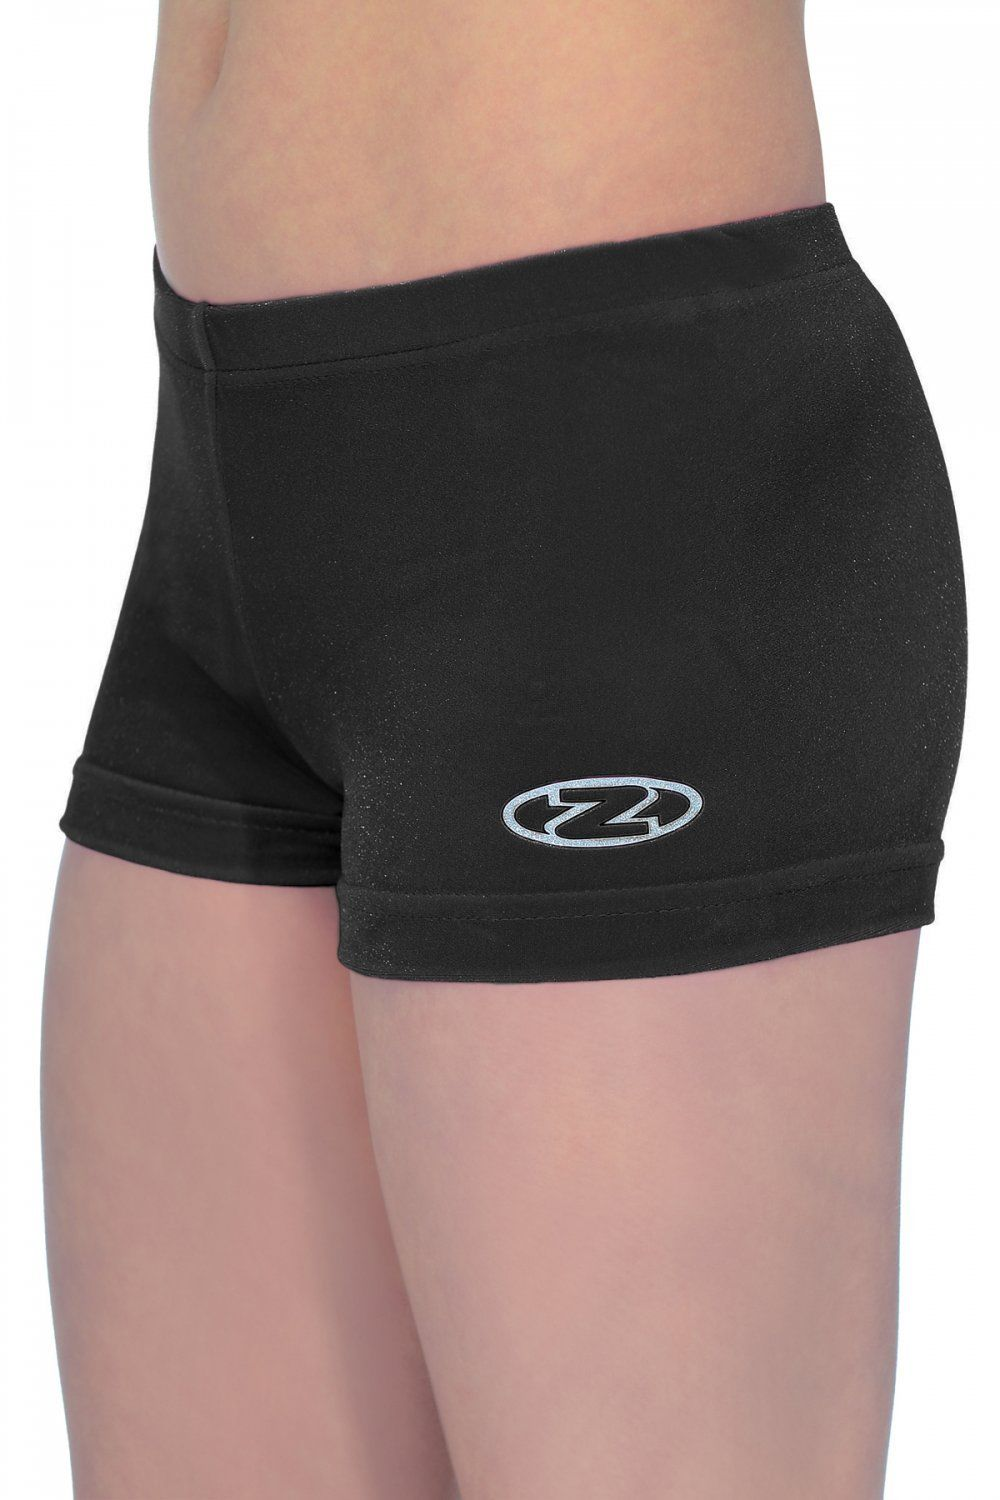 Roch Valley - the Zone Smooth Velour Hipster Shorts